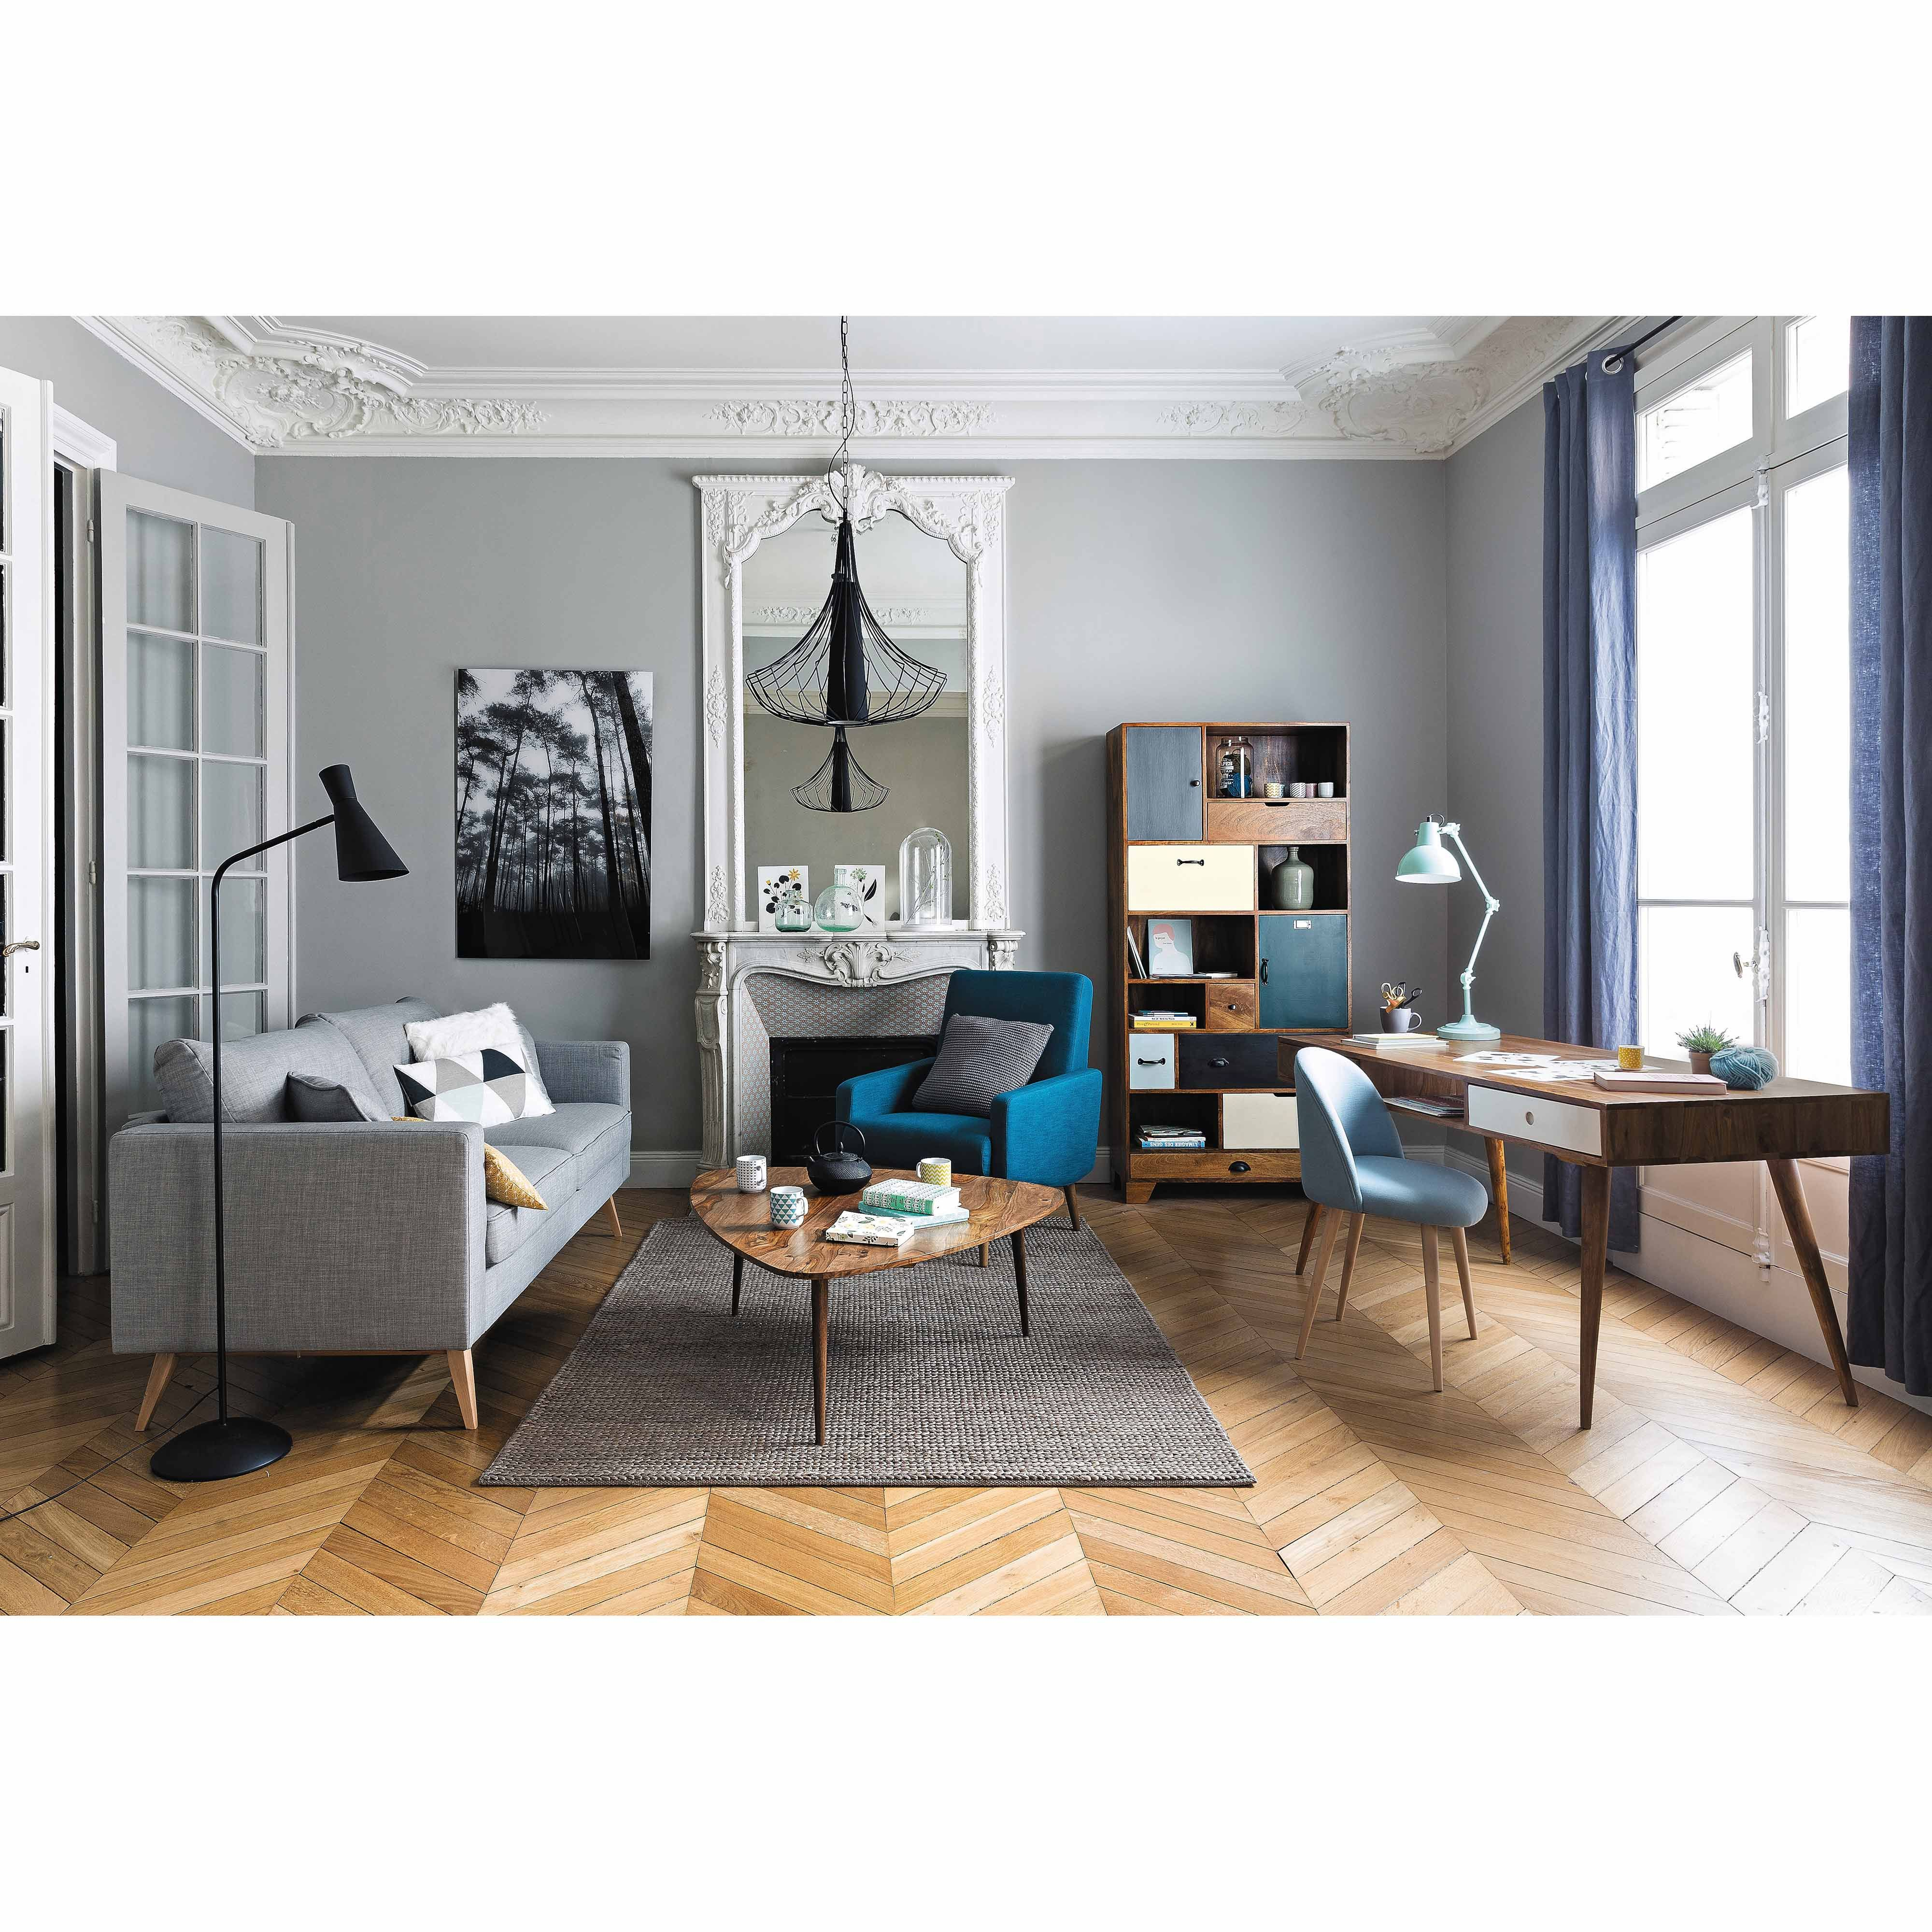 fauteuil vintage en tissu bleu p trole sweet house house architecture and architecture. Black Bedroom Furniture Sets. Home Design Ideas